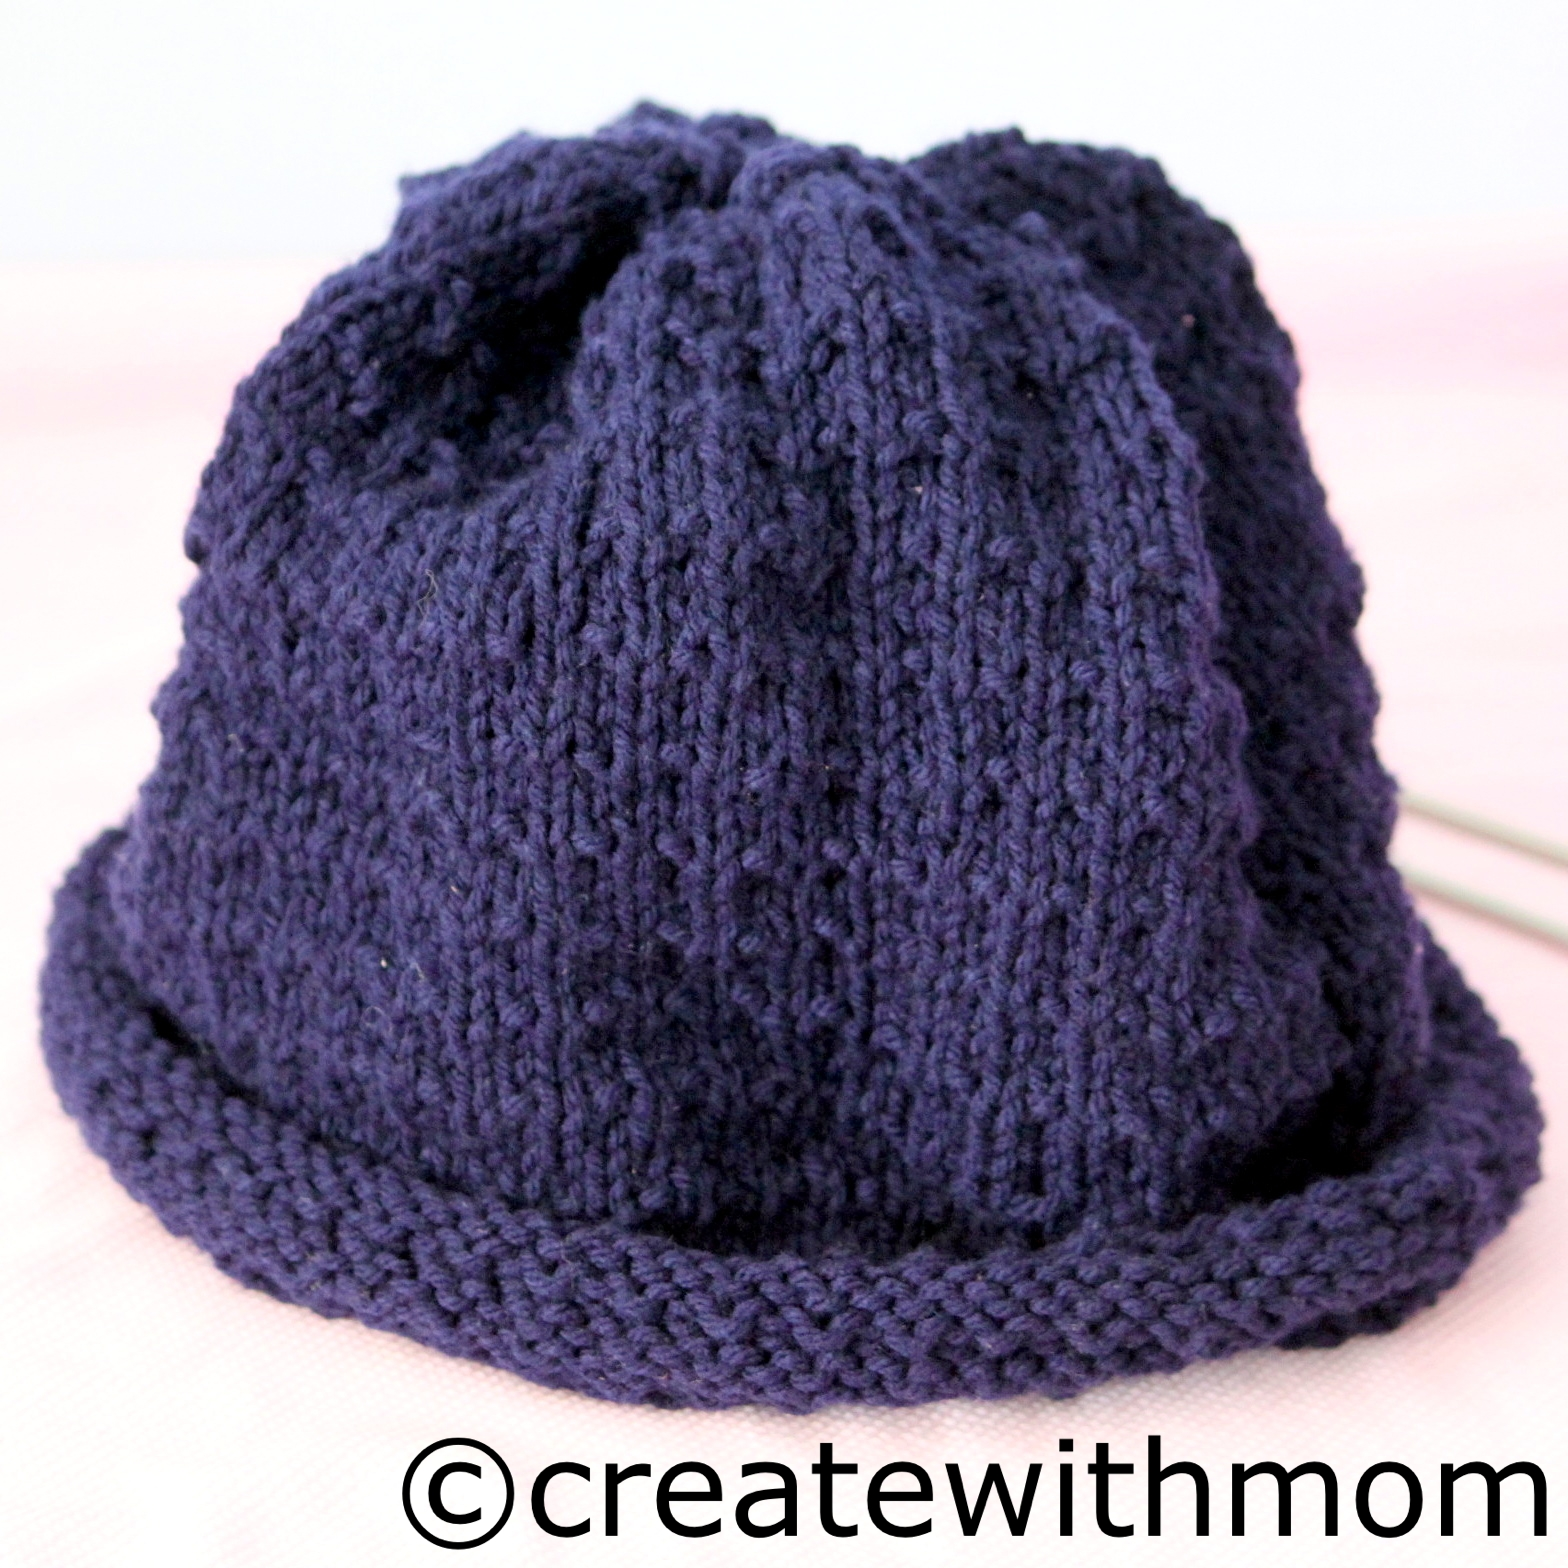 Create With Mom: Knit hat